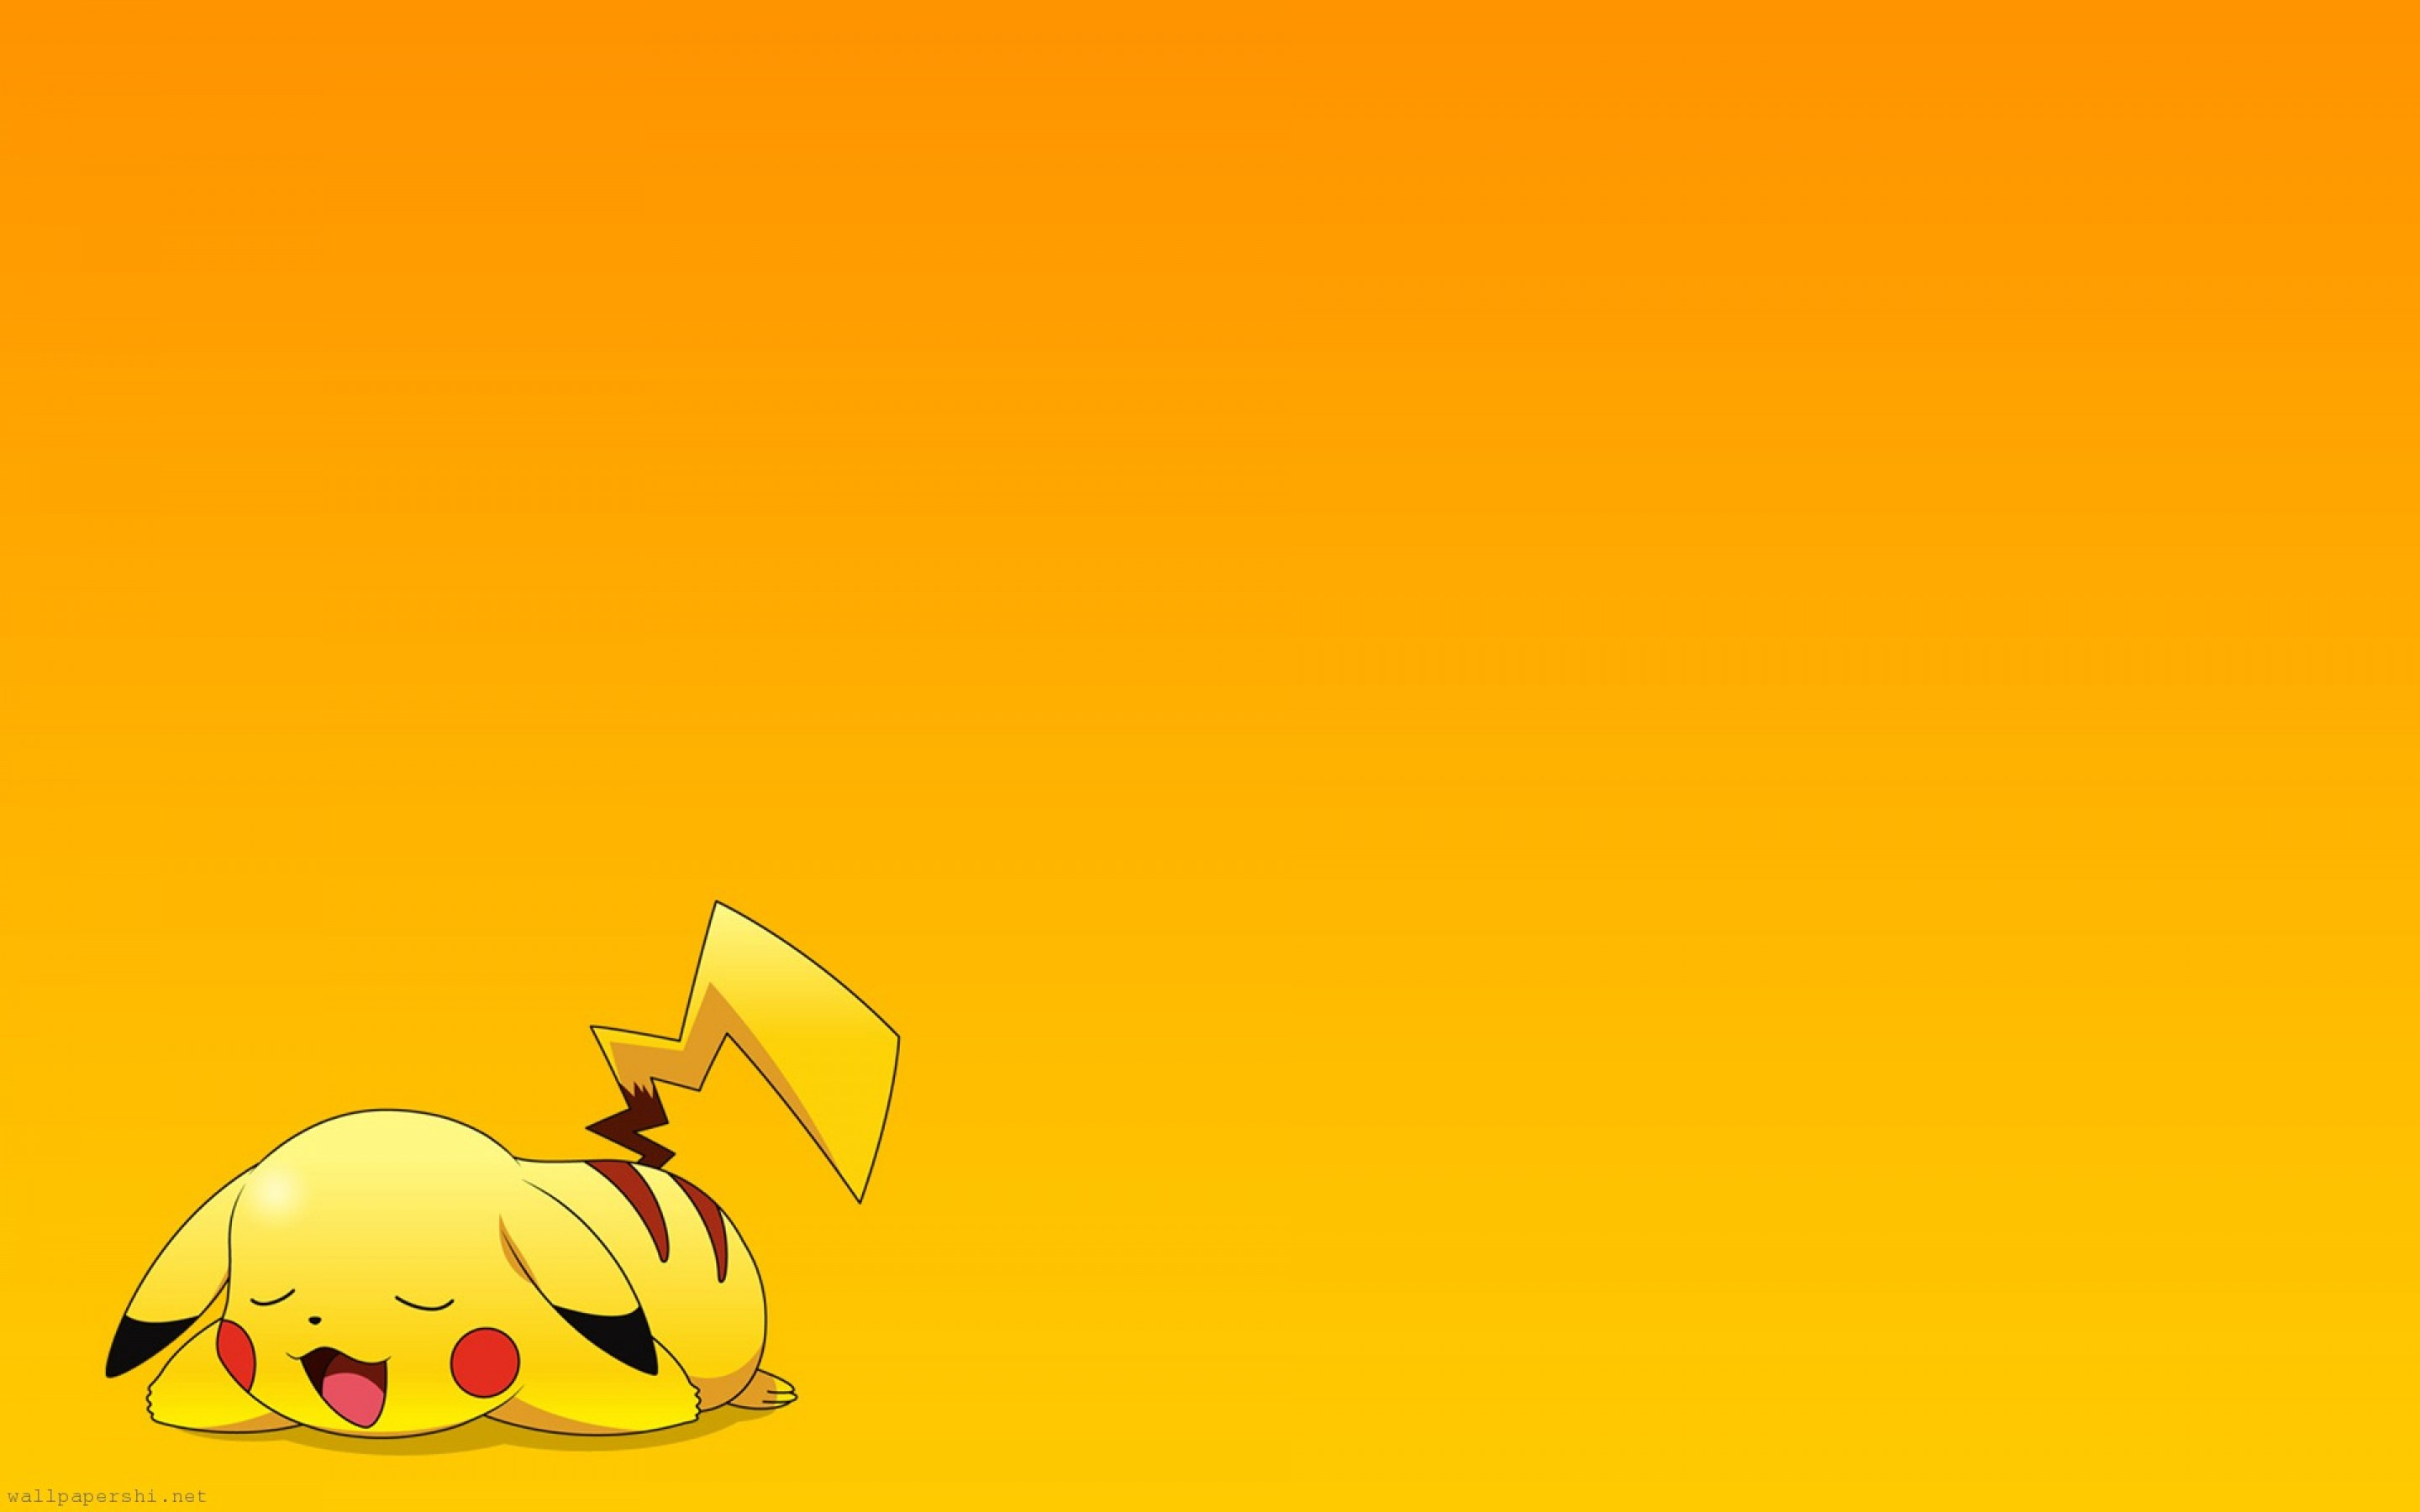 Pokemon Pikachu Exclusive HD Wallpapers 2888 2880x1800